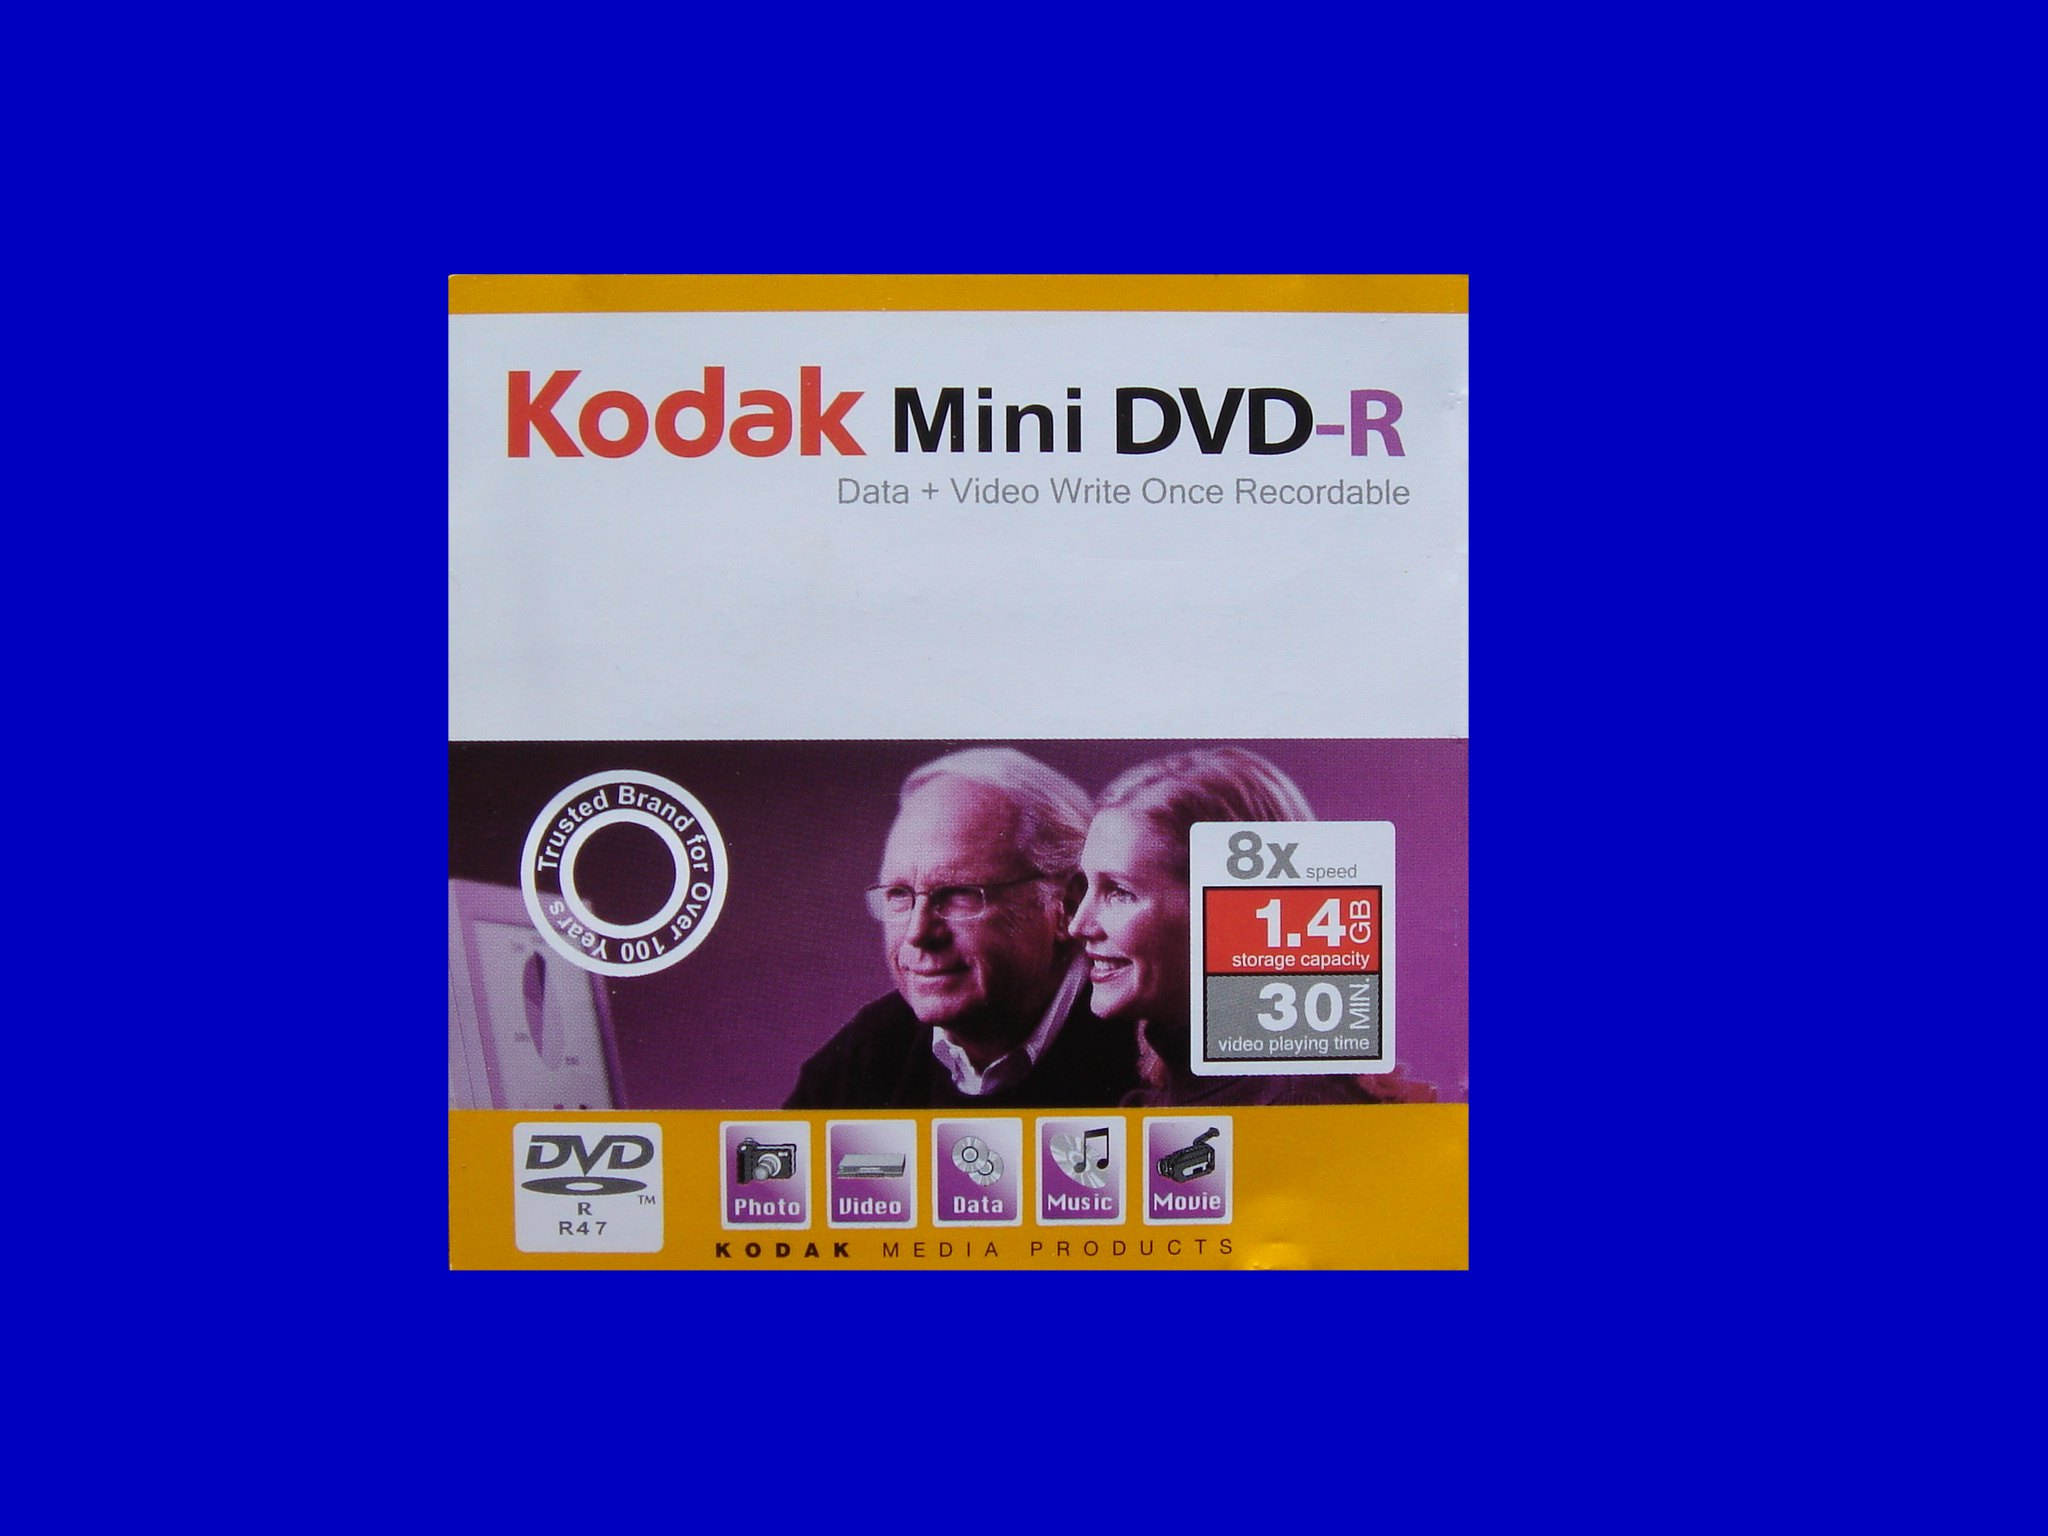 A Kodak mini DVD-R disk that was from a Sony Handycam DCR-DVD205. The disk failed to be finalized and showed C1302 error.